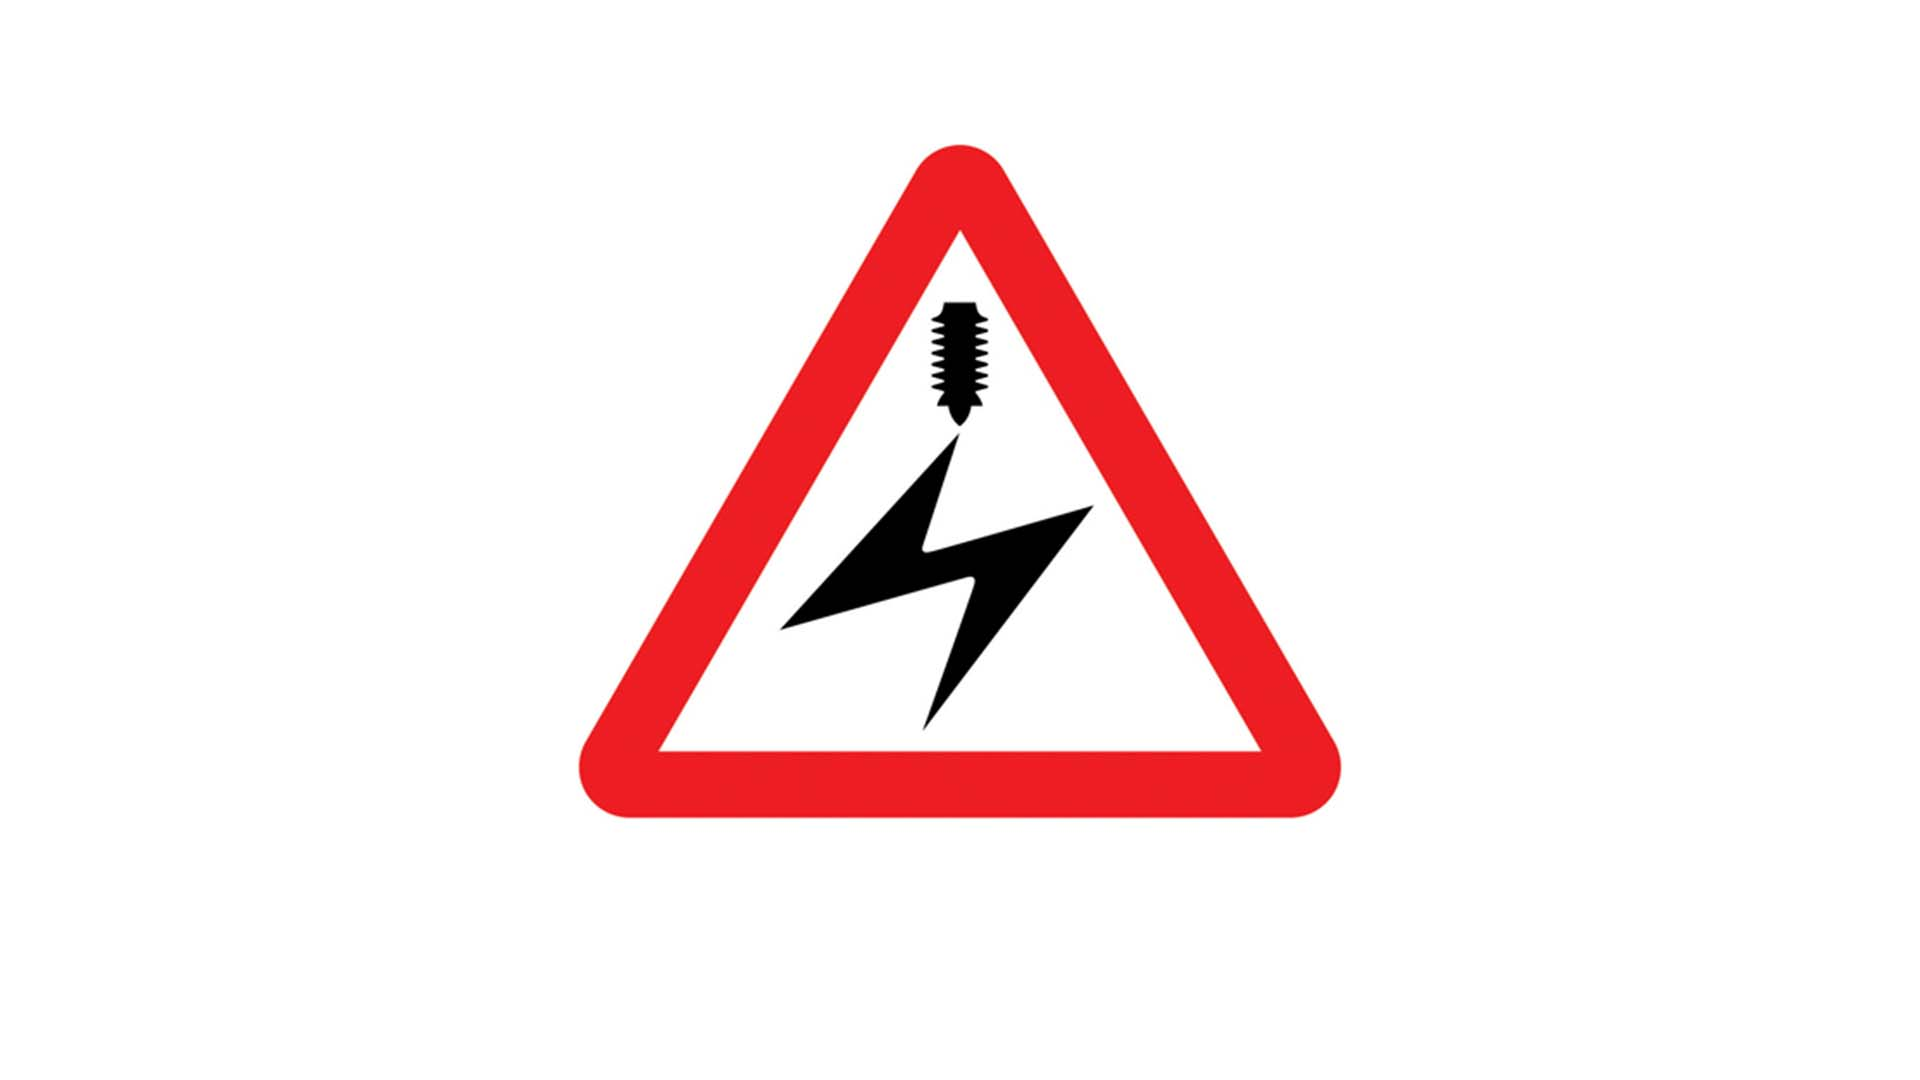 Overhead electric cables road sign